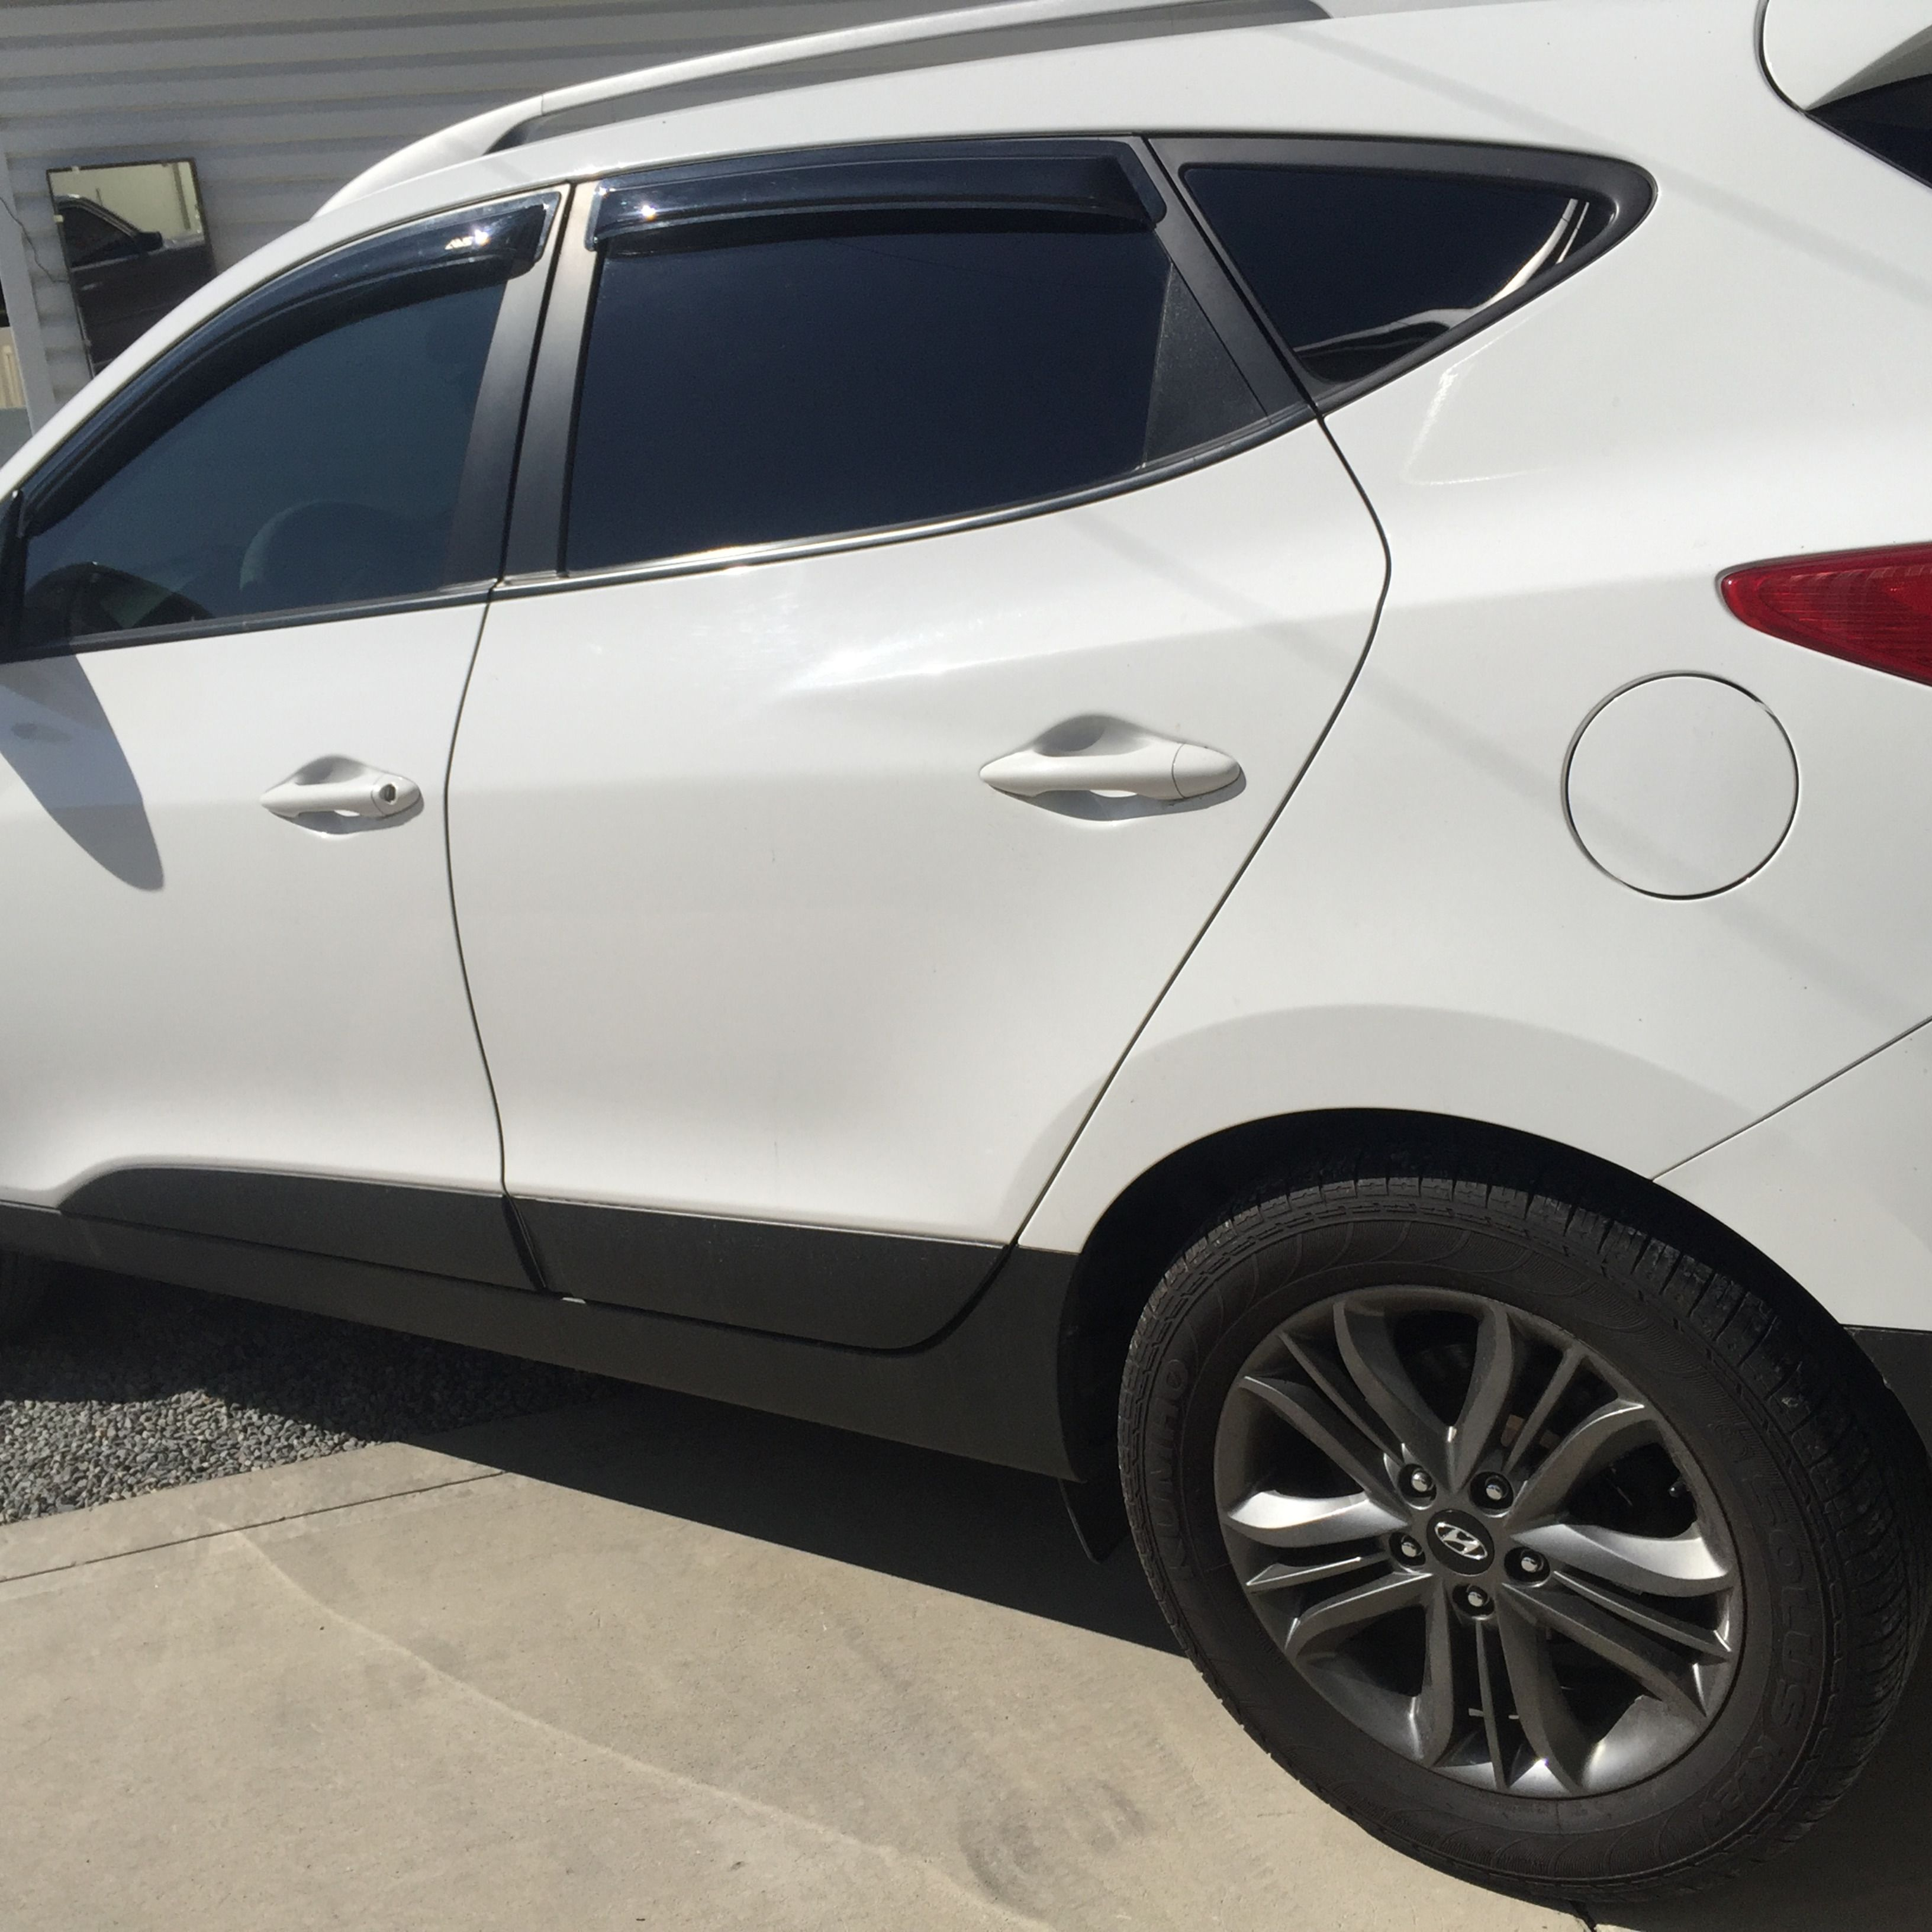 Look At This 2015 Hyundai Tucson With Our Mind Blowing Window Tint Tinted Windows Hyundai Tucson Commercial Window Tinting